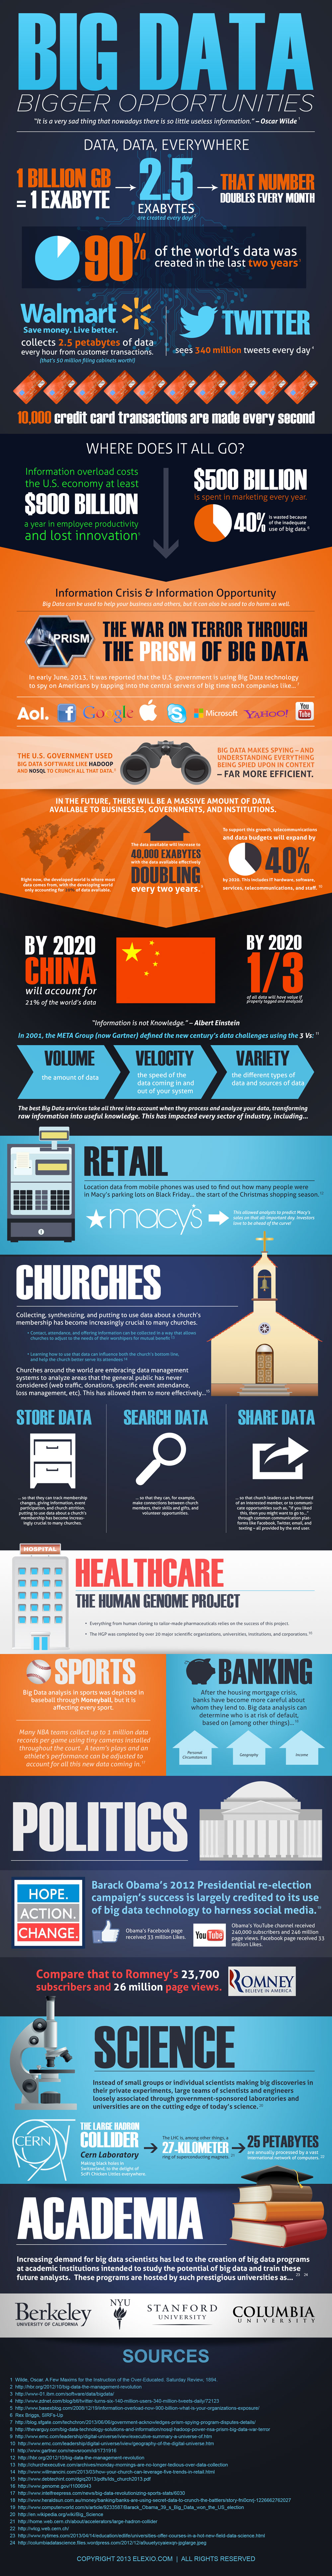 8 Sectors Where Big Data Can Be Used [Infographic]